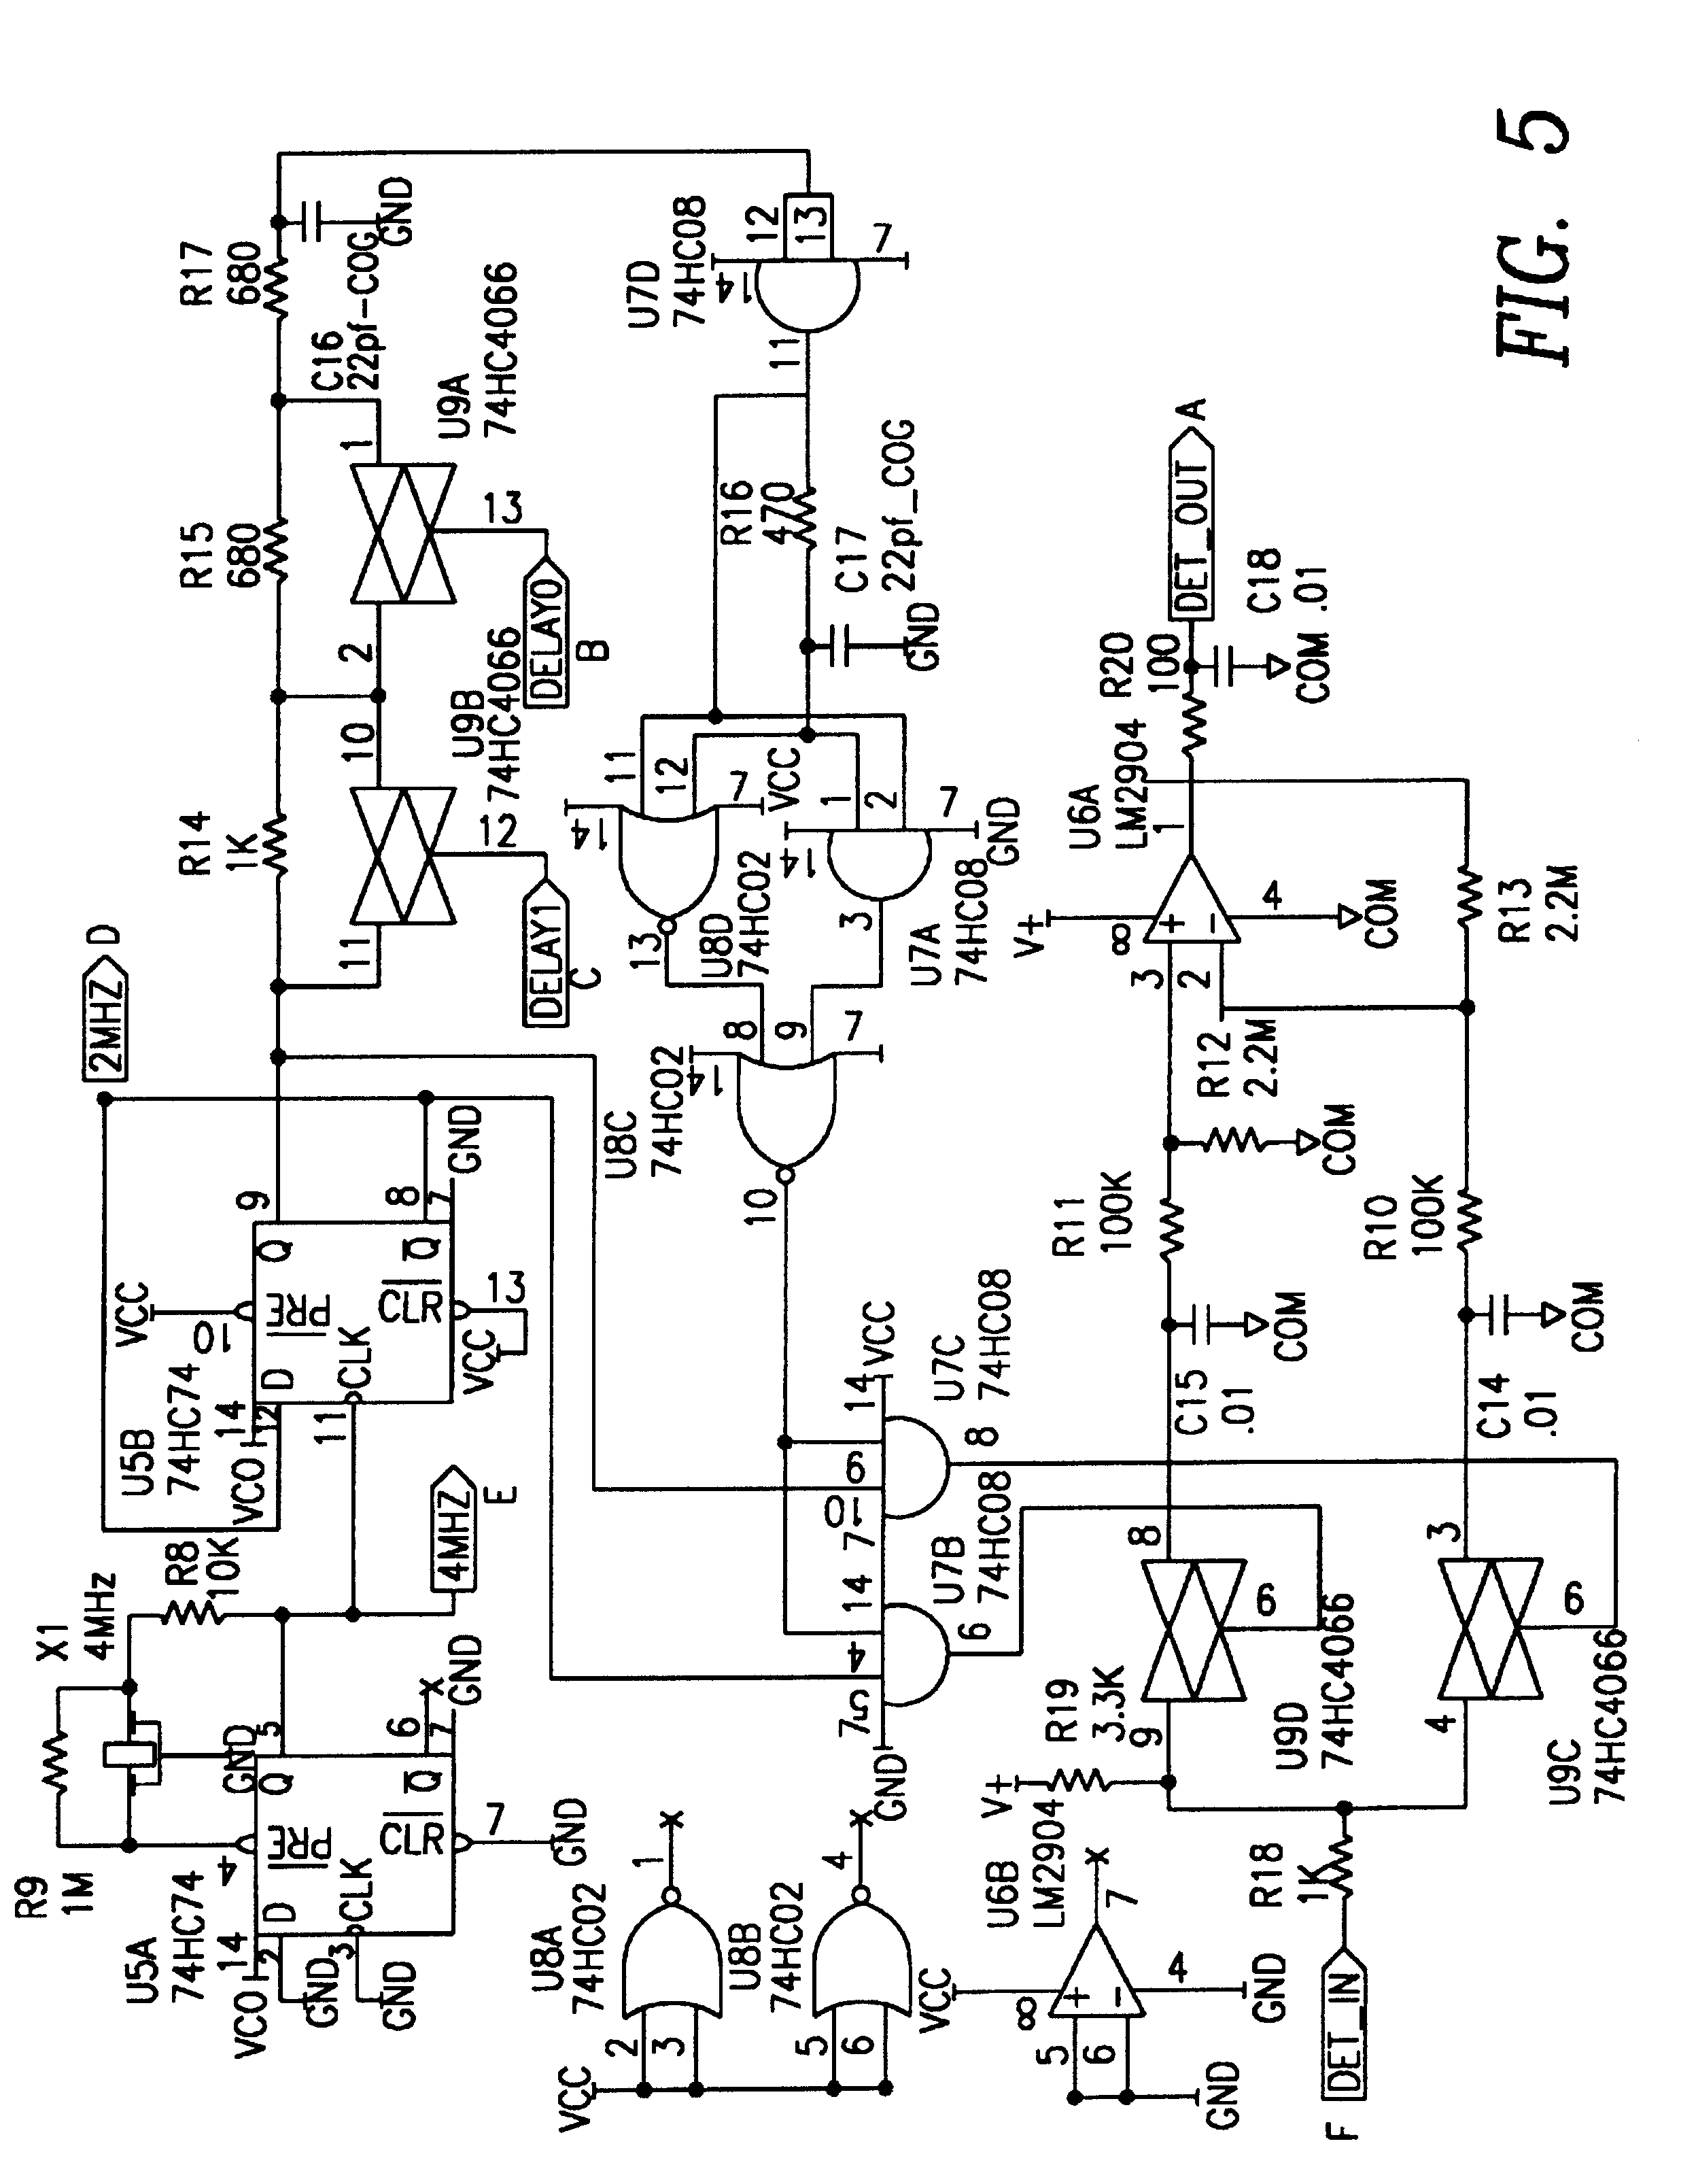 ga furnace schematic wiring diagram database 24 Volt Furnace Transformer Wiring carrier furnace part diagram wiring diagram database electric furnace design ga furnace schematic